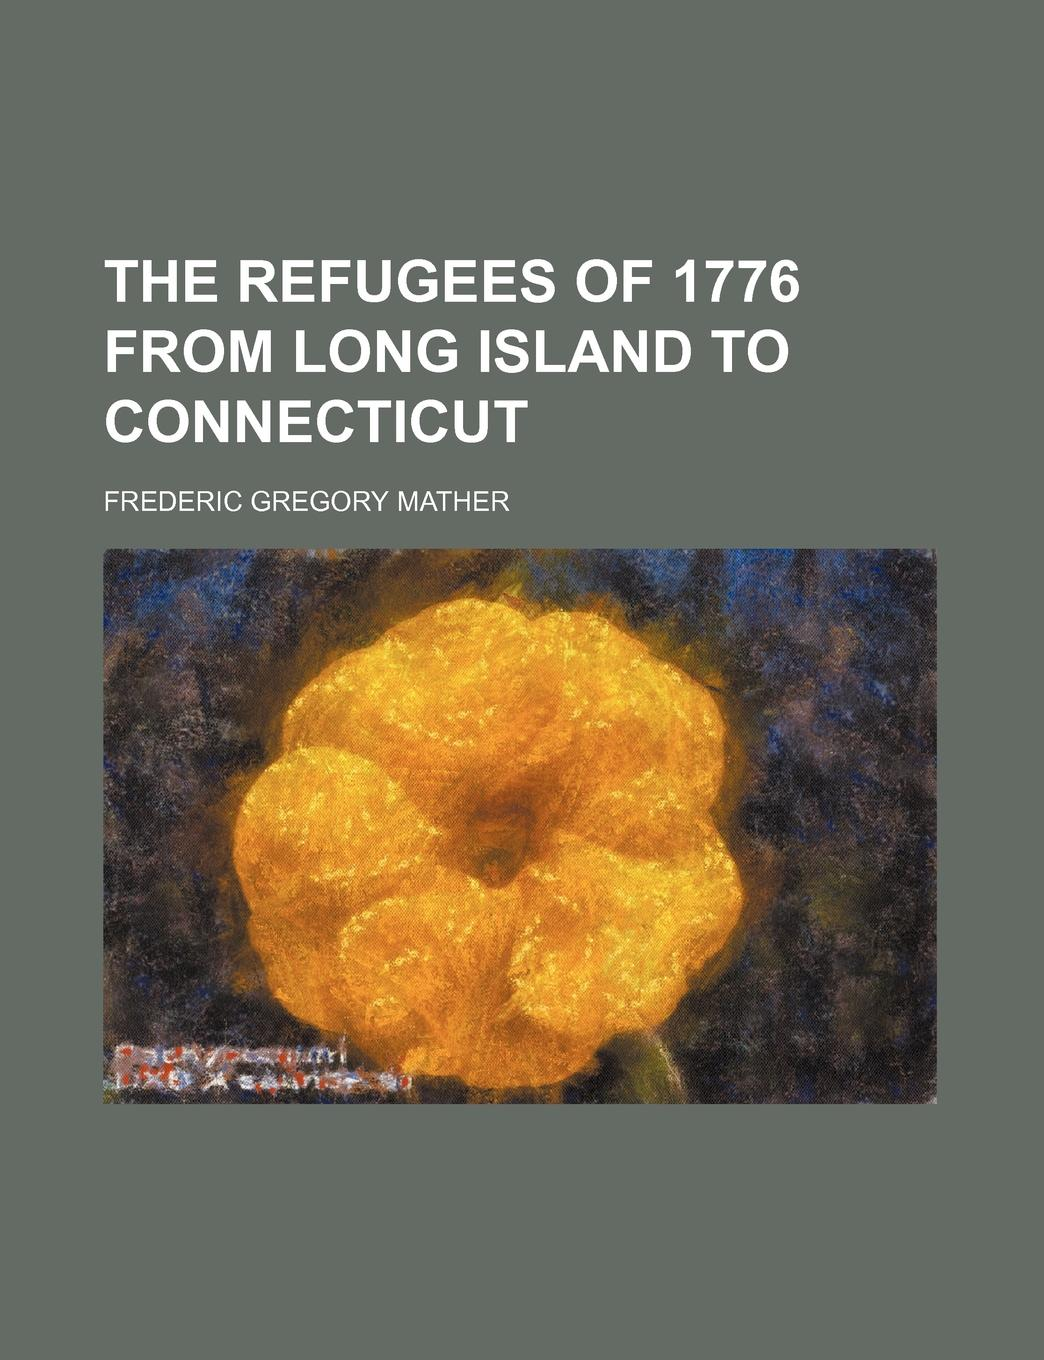 Frederic Gregory Mather The Refugees of 1776 from Long Island to Connecticut bradley richard the plague at marseilles consider d